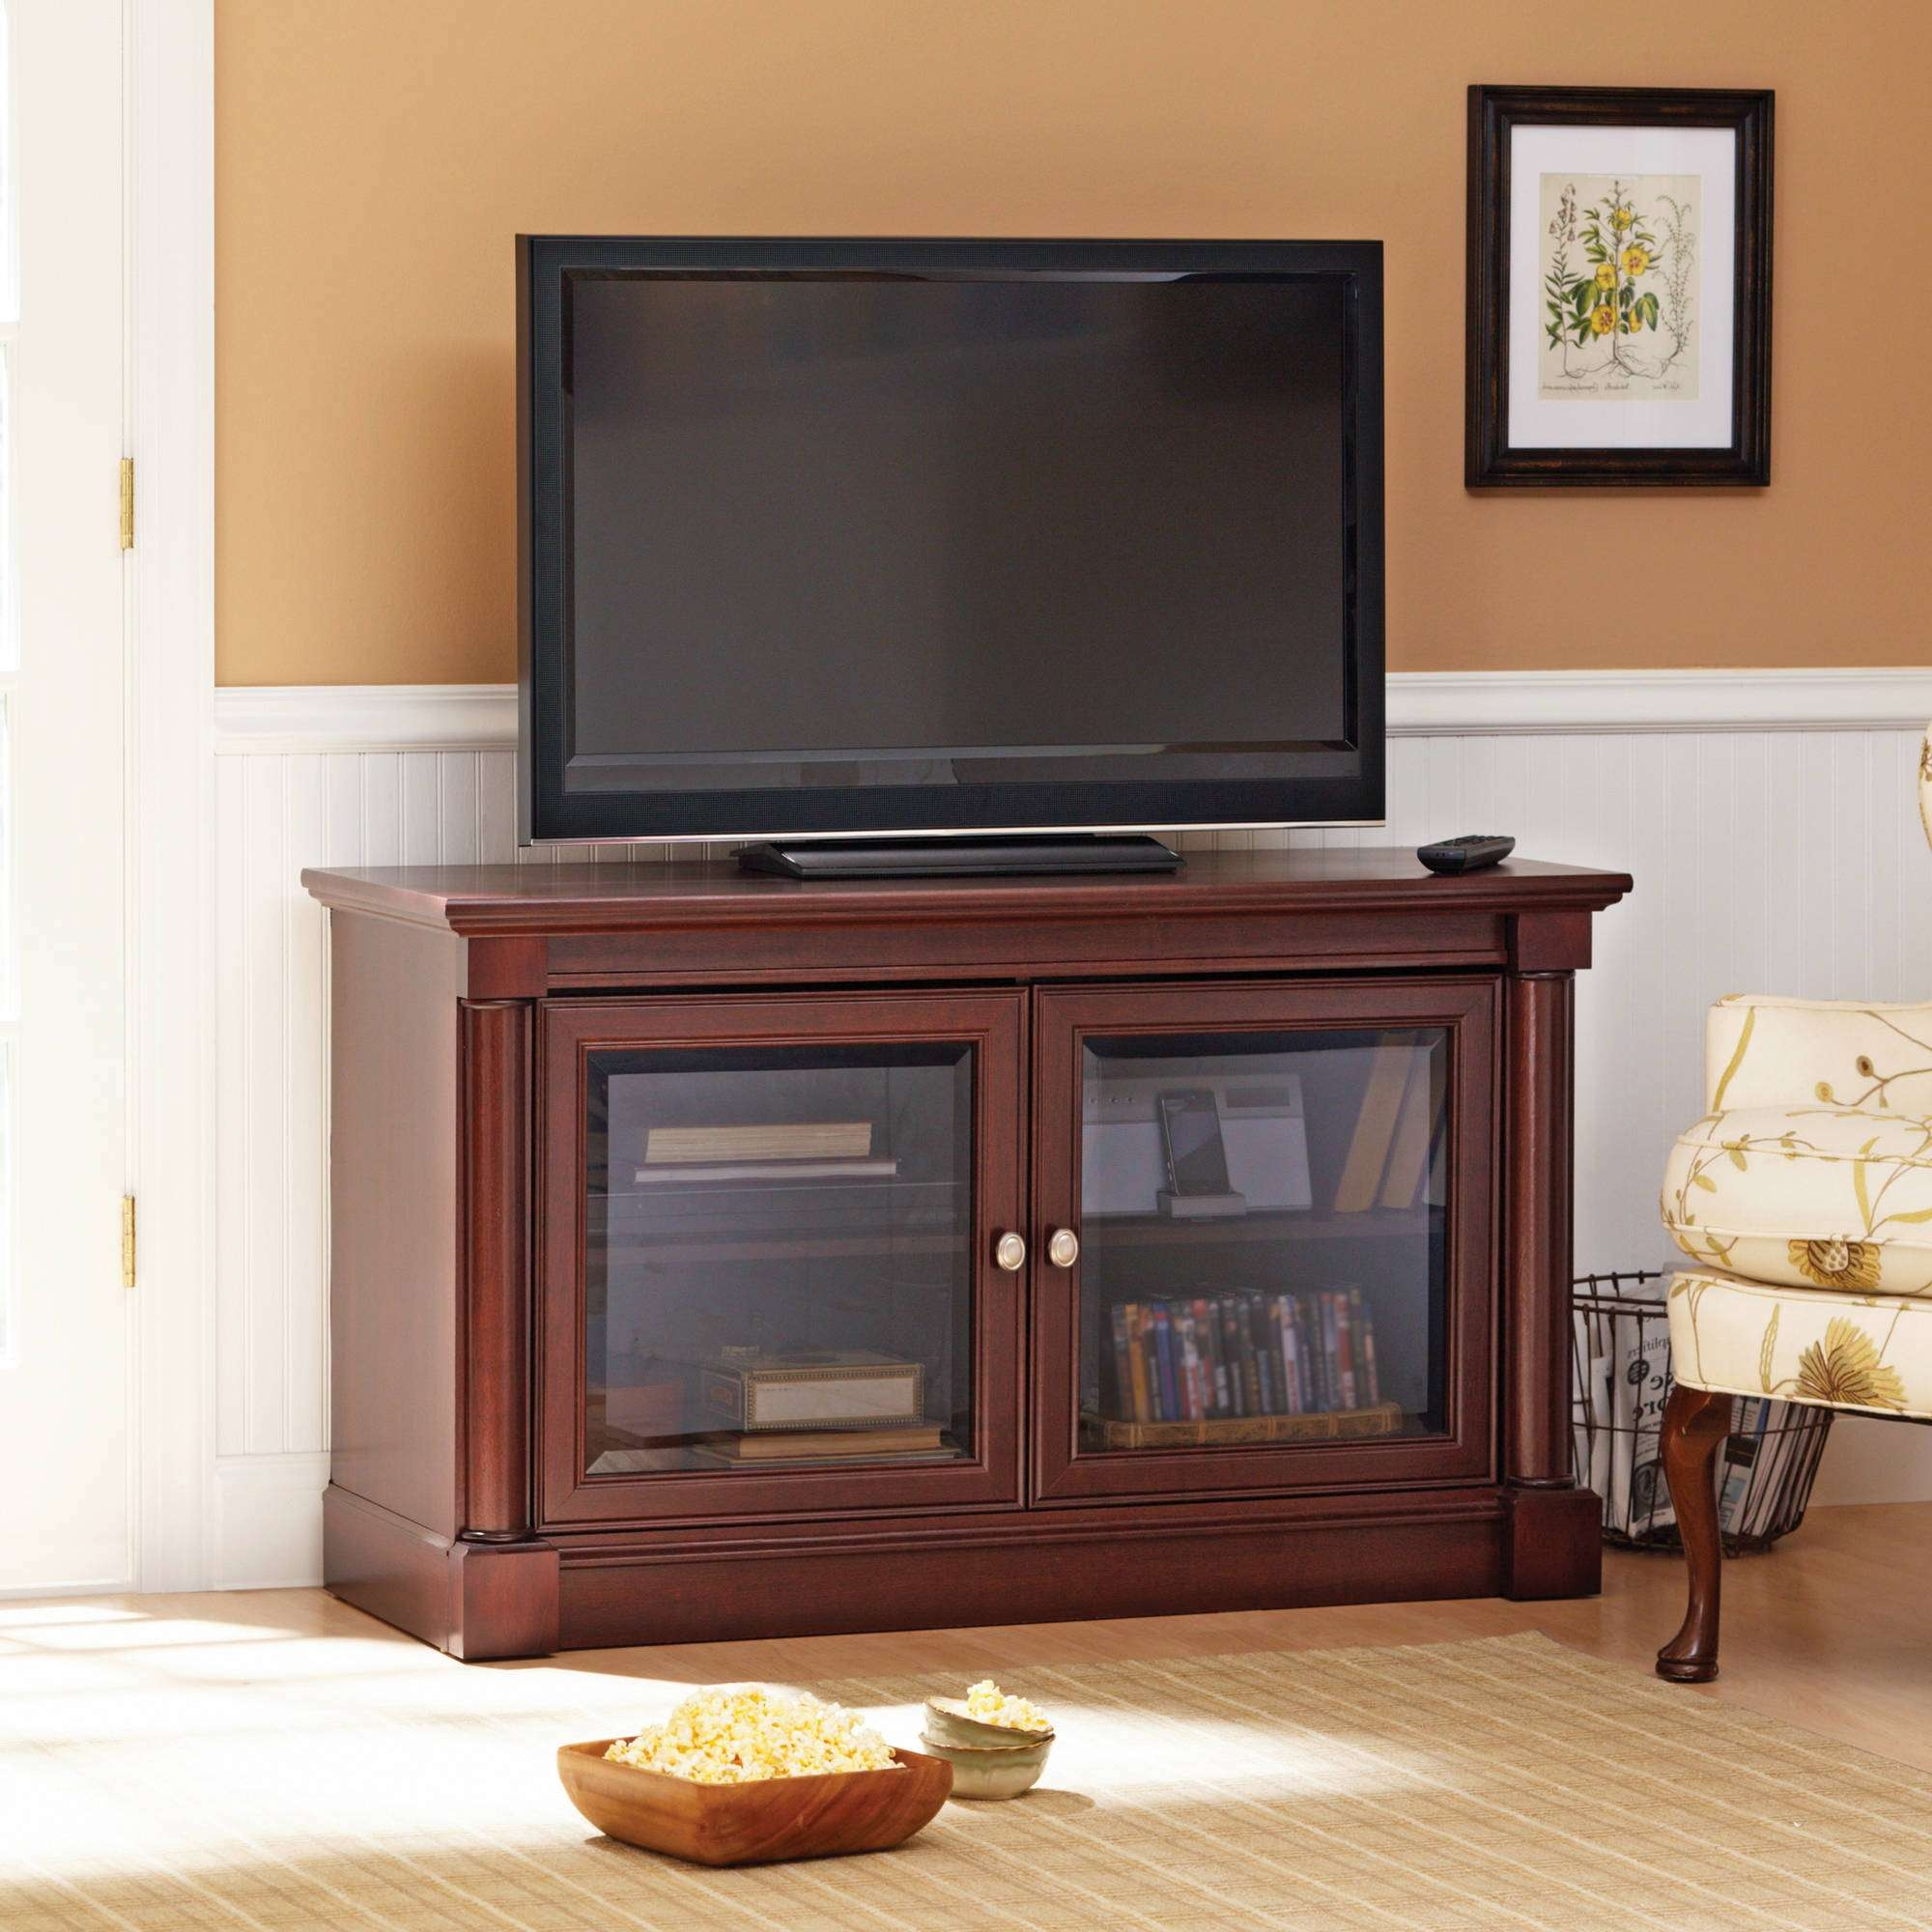 Better Homes And Gardens Ashwood Road Cherry Tv Stand, For Tvs Up Inside Cherry Wood Tv Cabinets (View 1 of 20)